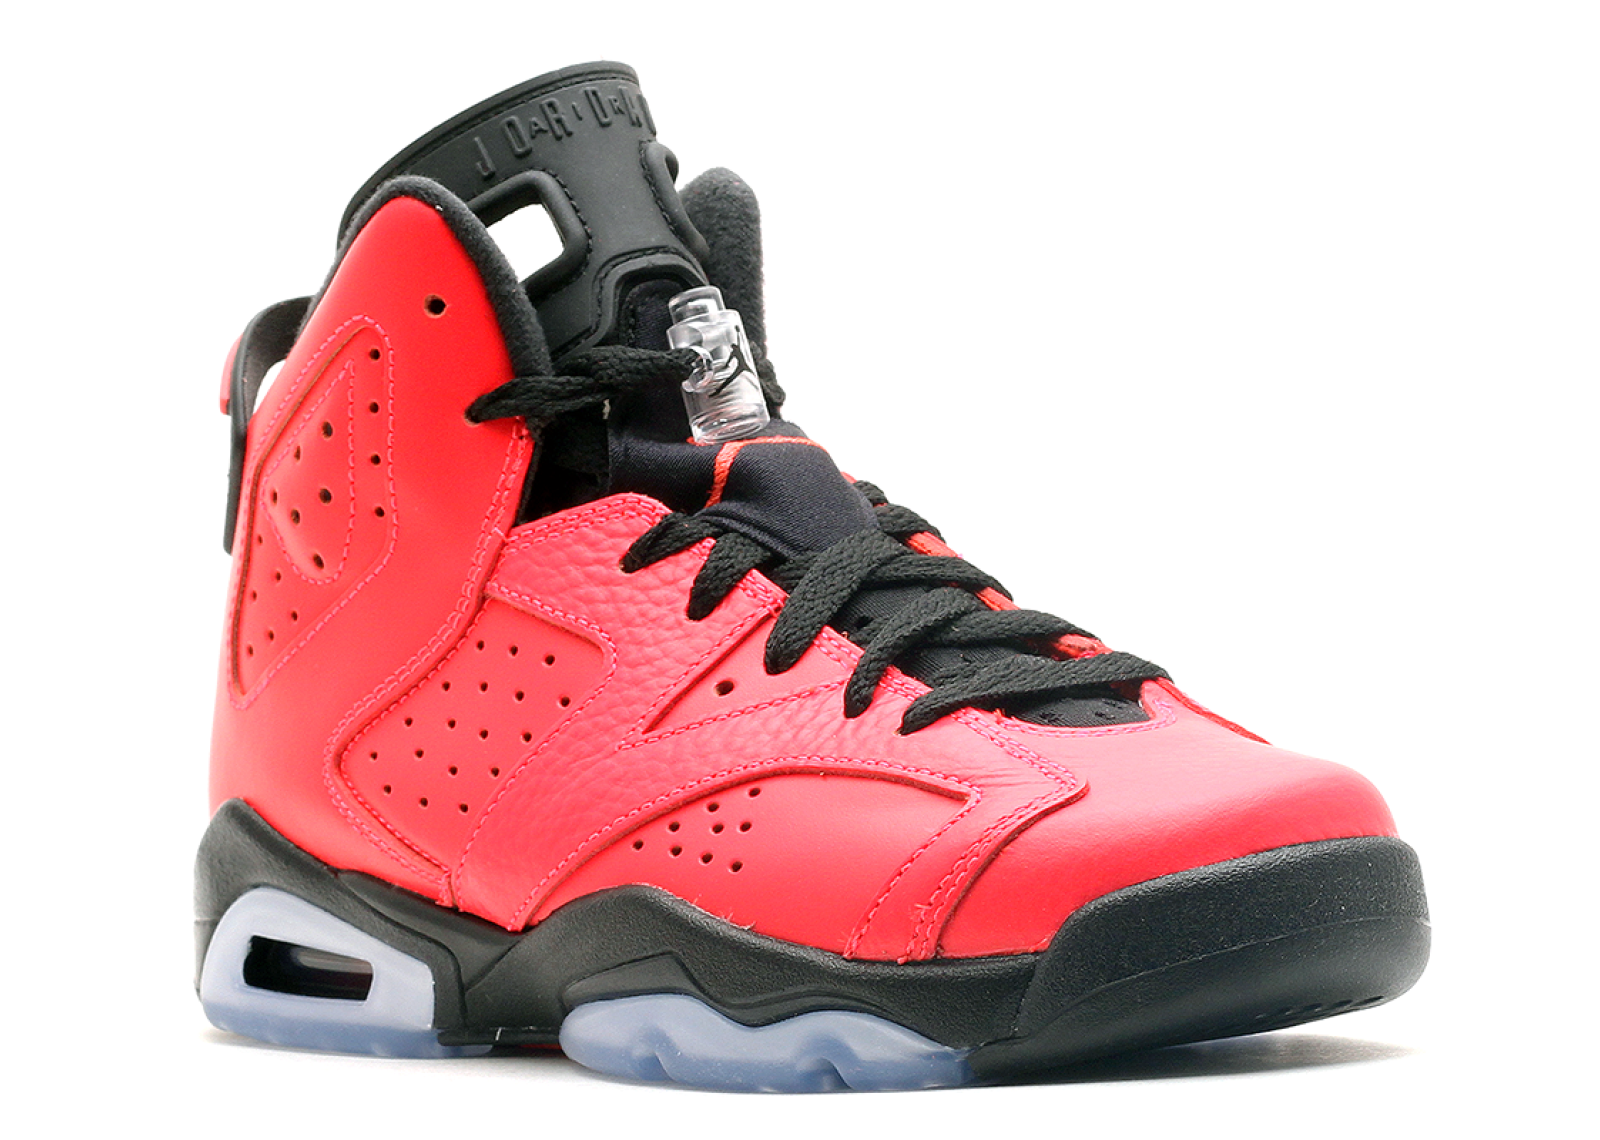 wholesale dealer dd0aa 15d52 Air Jordan - Unisex - Air Jordan 6 Retro Bg (Gs) 'Infrared 23' - 384665-623  - Size 7